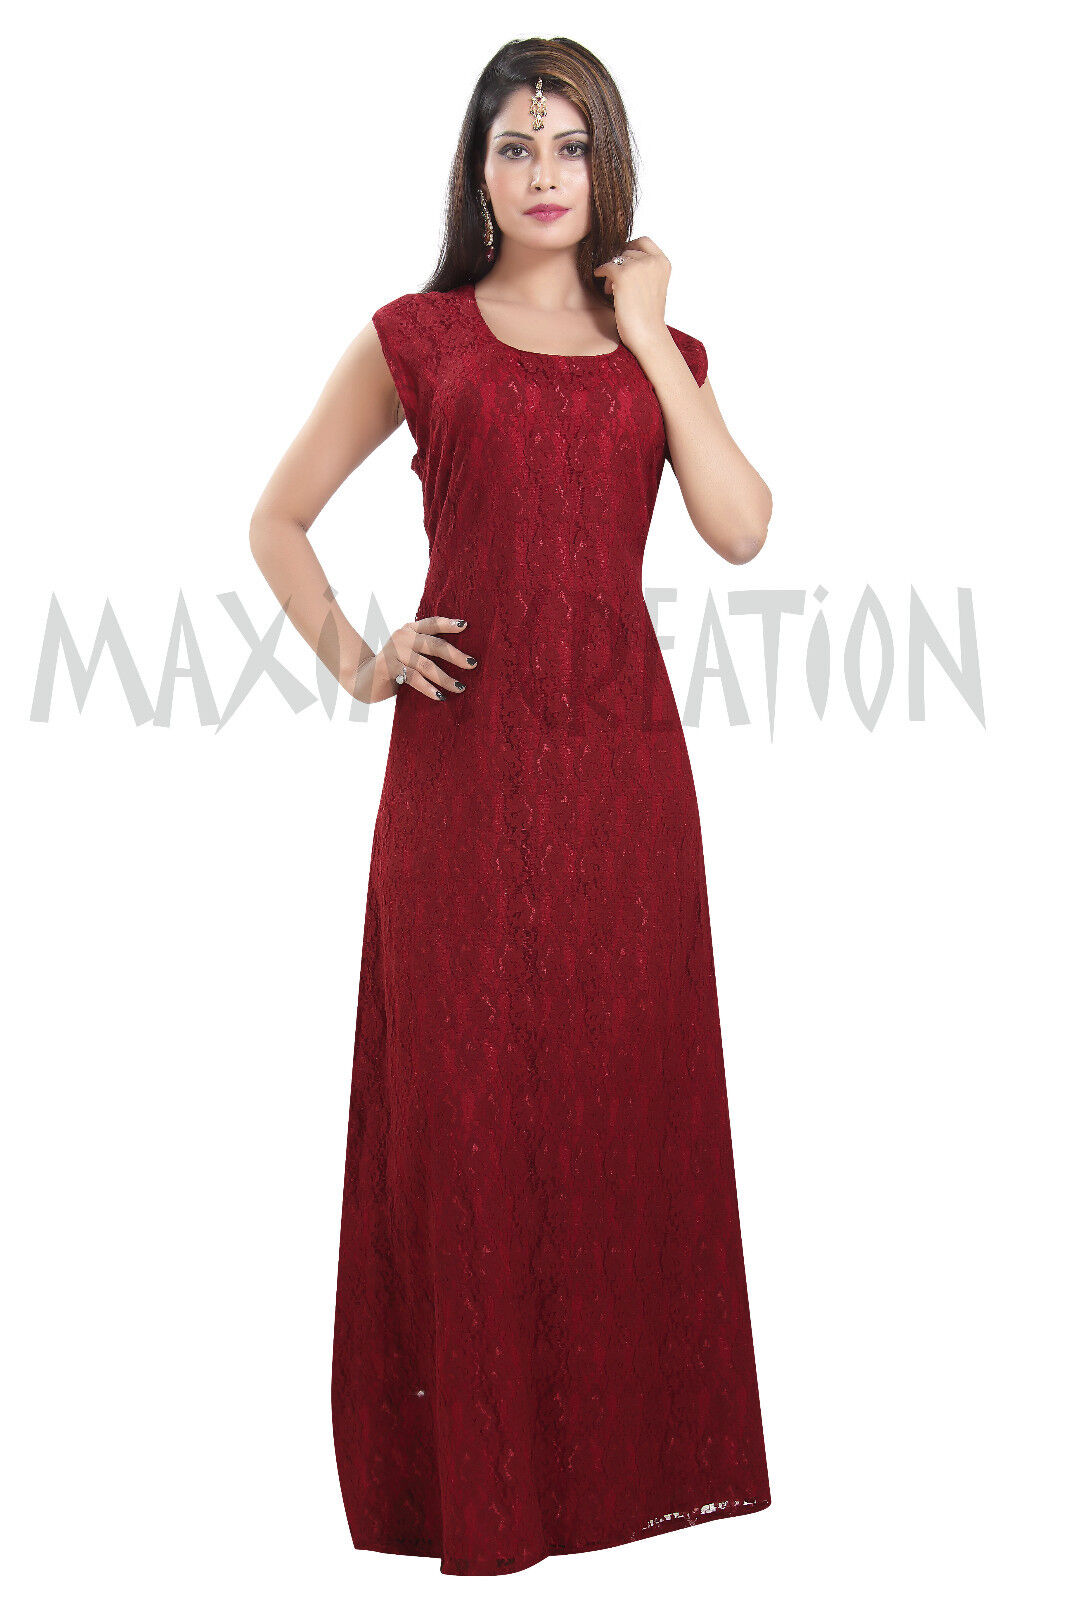 Beautiful Party Wear Evening Maxi Costume For Halloween By Maxim Creation 6584